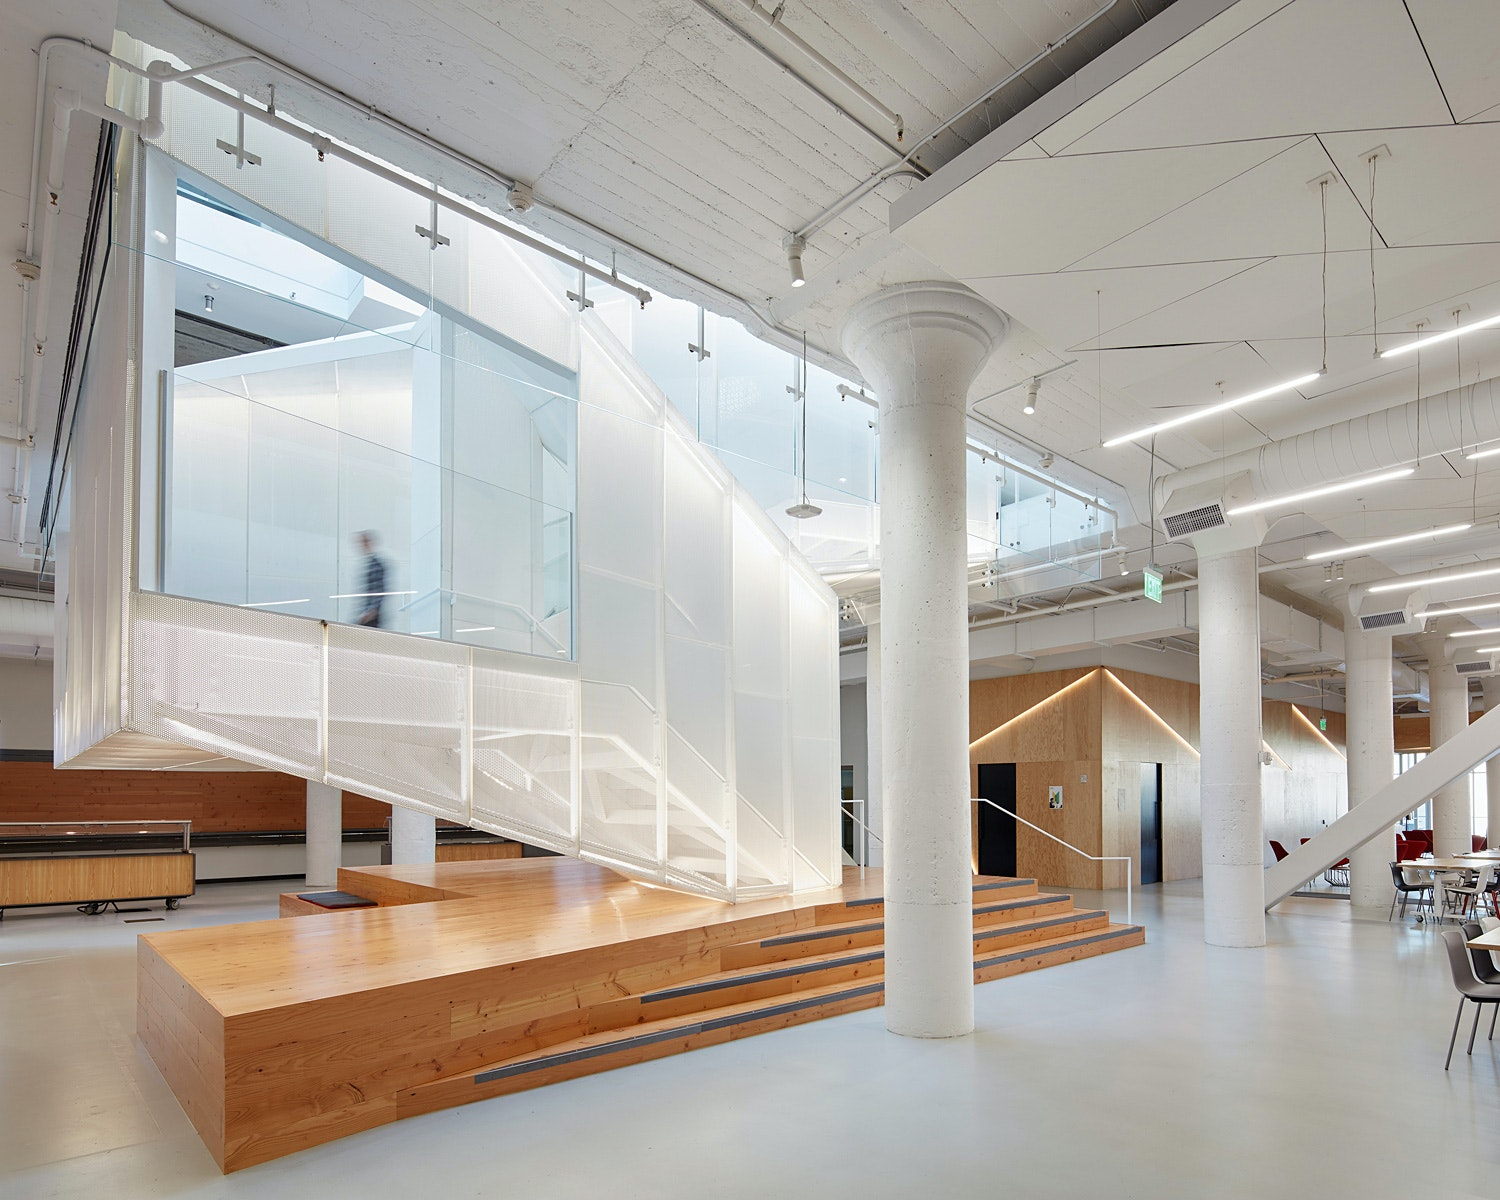 Pinterest HQ; San Francisco, CA By IwamotoScott Architecture With Brereton  Architects. Photo: Bruce Damonte.